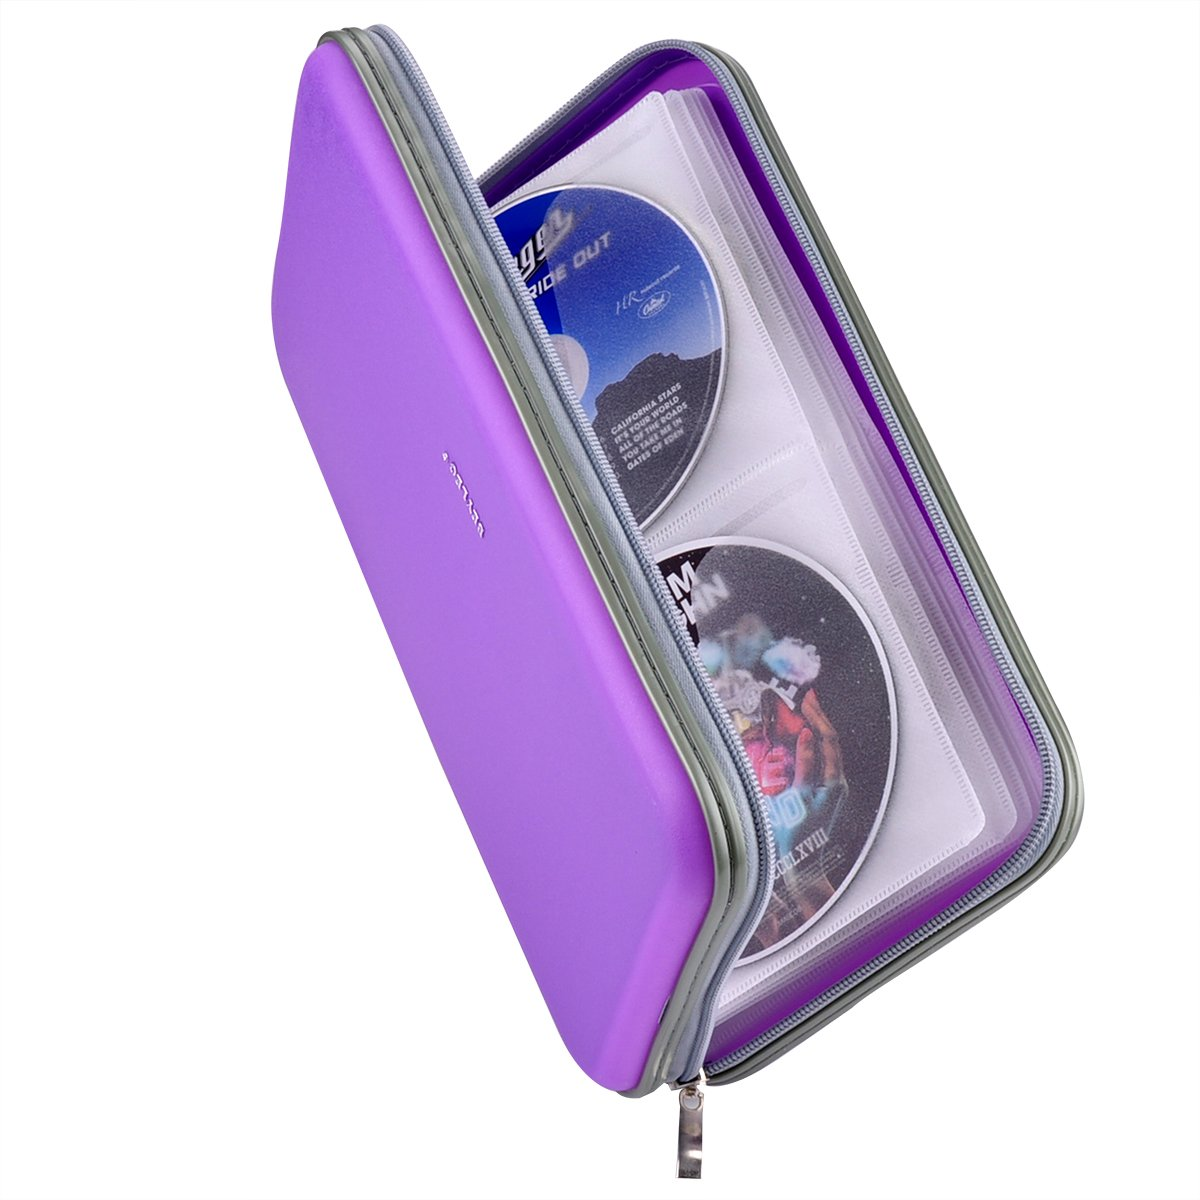 Wismart 70 Capacity Heavy Duty CD DVD Blu-ray Media Case Storage Holder Organizer Wallet (Purple)